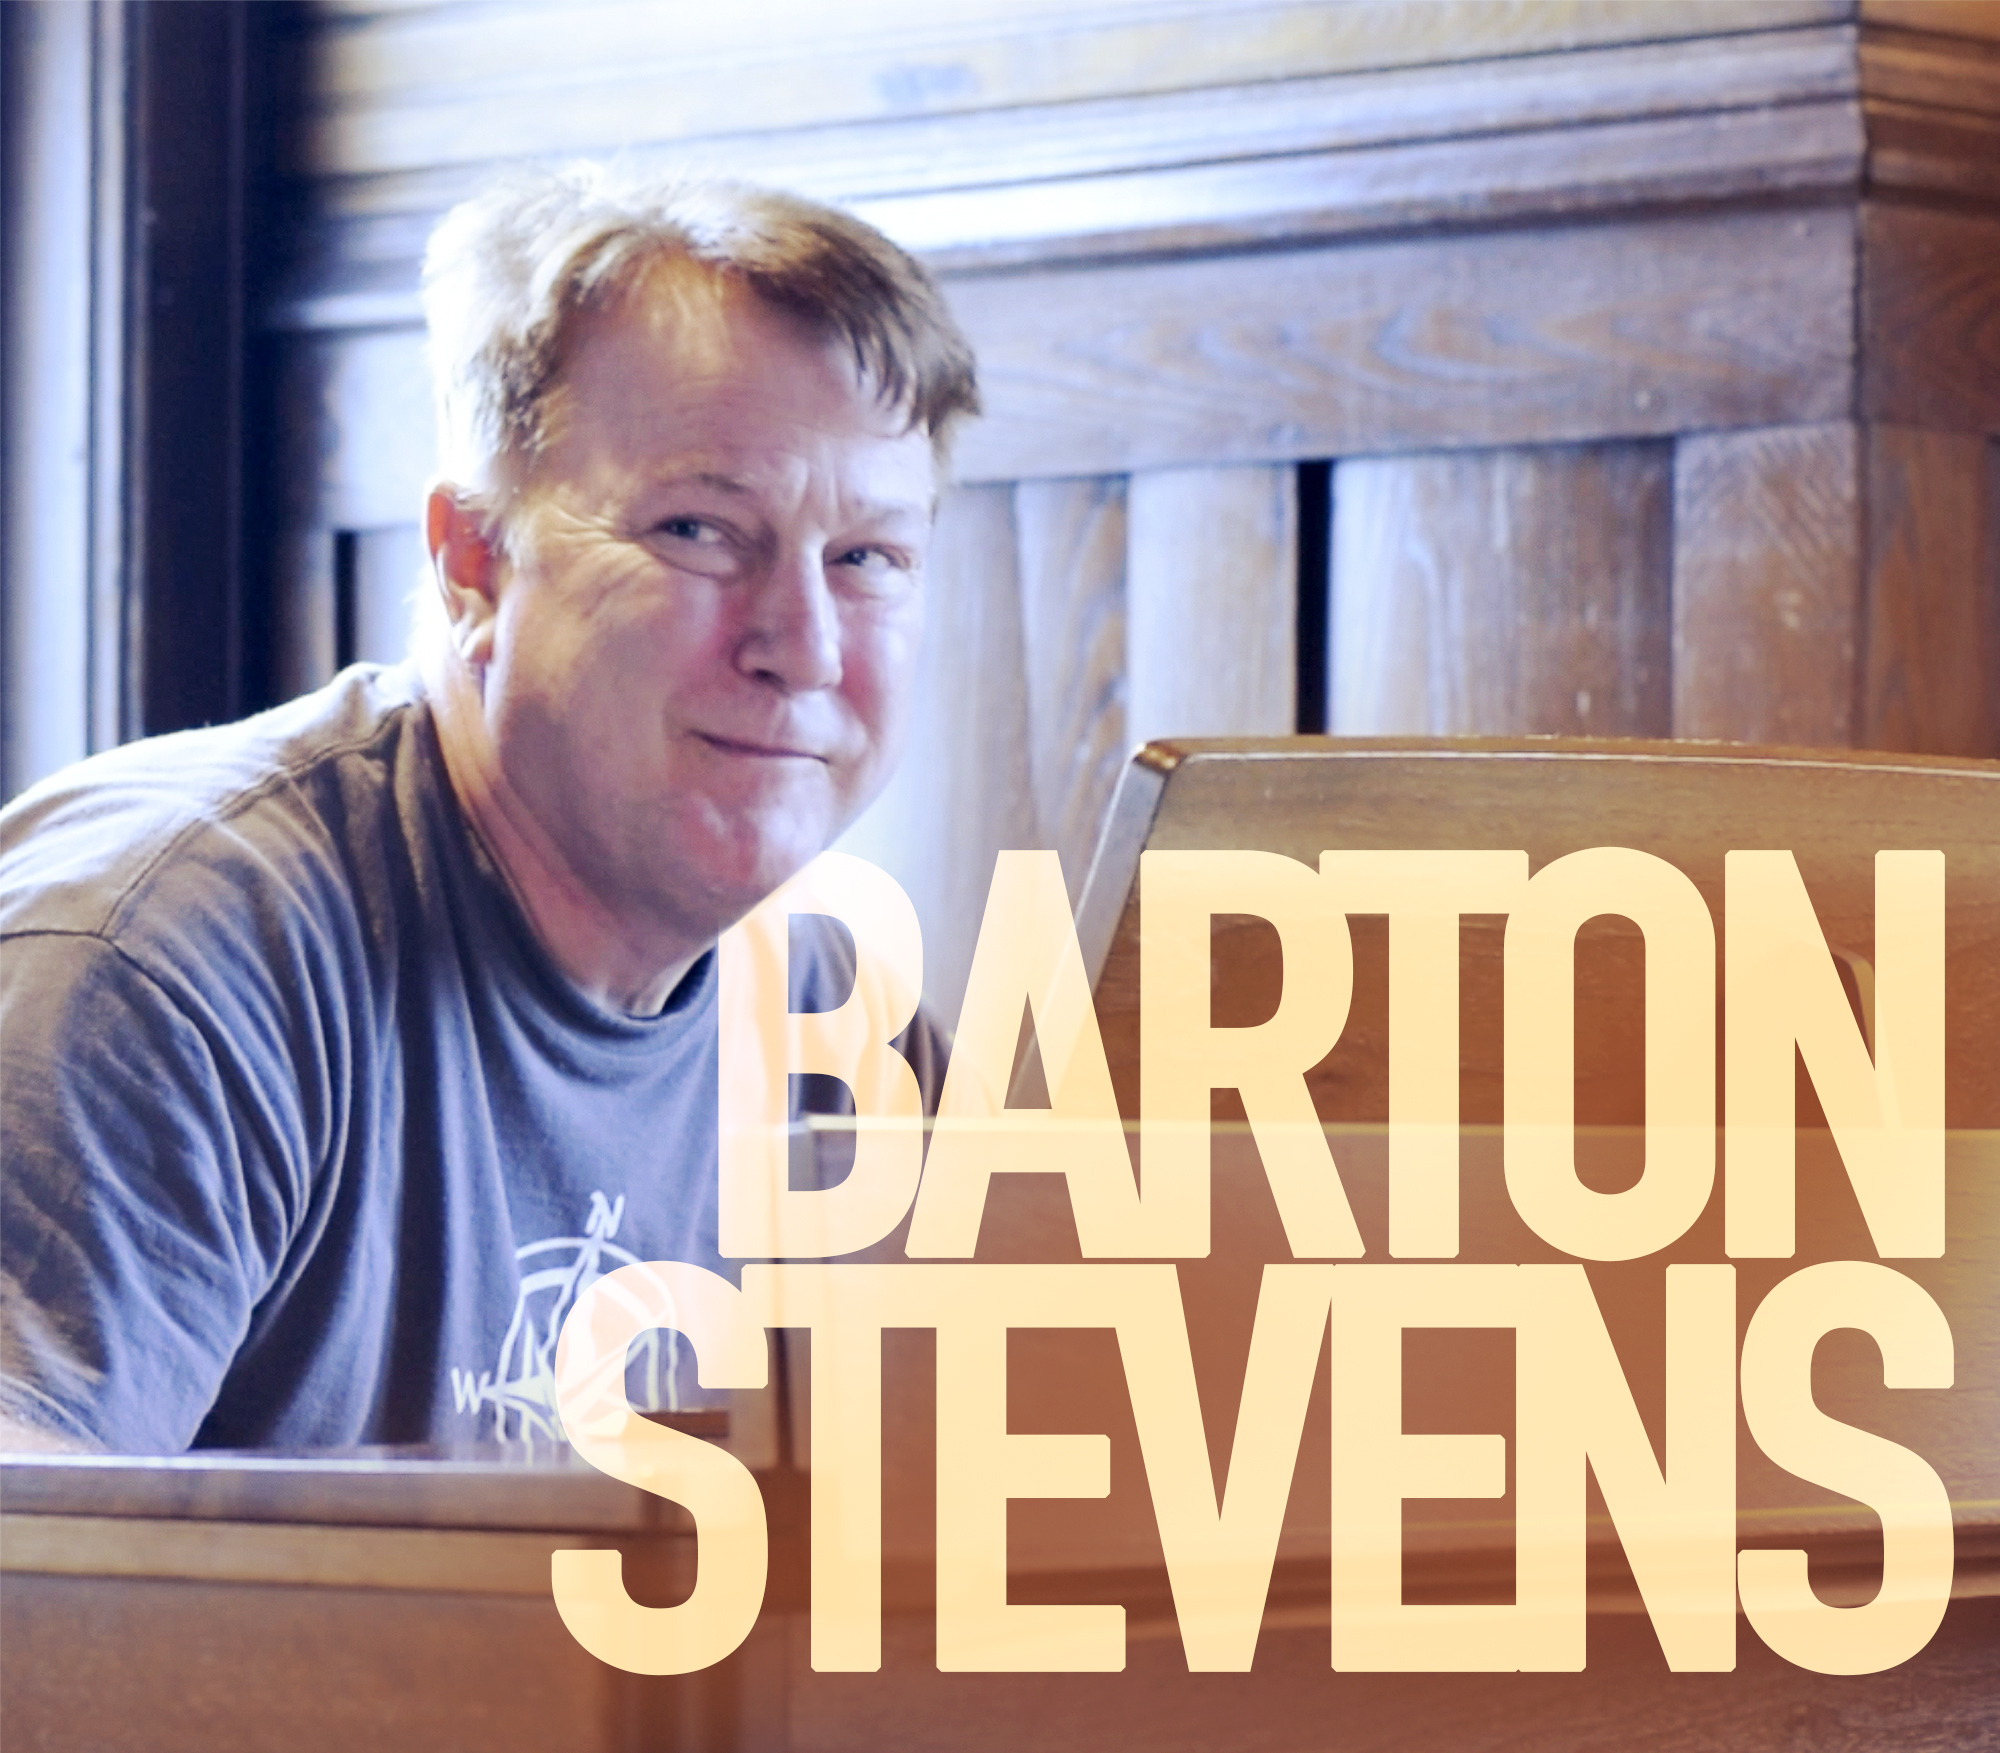 """Sound Engineer, tour manager, trailer pack specialist, and one liner king  Barton AKA """"Bartok"""" Stevens  is the unsung hero in the group. Bartok (Father of Shane and Raice) makes sure that our sound is consistent, powerful, and easy on the ears for all listeners. Barton, originally from Grayson KY, toured the world for many years playing piano with Billy Ray Cyrus. His vast musical knowledge and experience on the road designates him as our rehearsal/tour manager. When something sounds rough, Barton will be the first to call it like he hears it."""